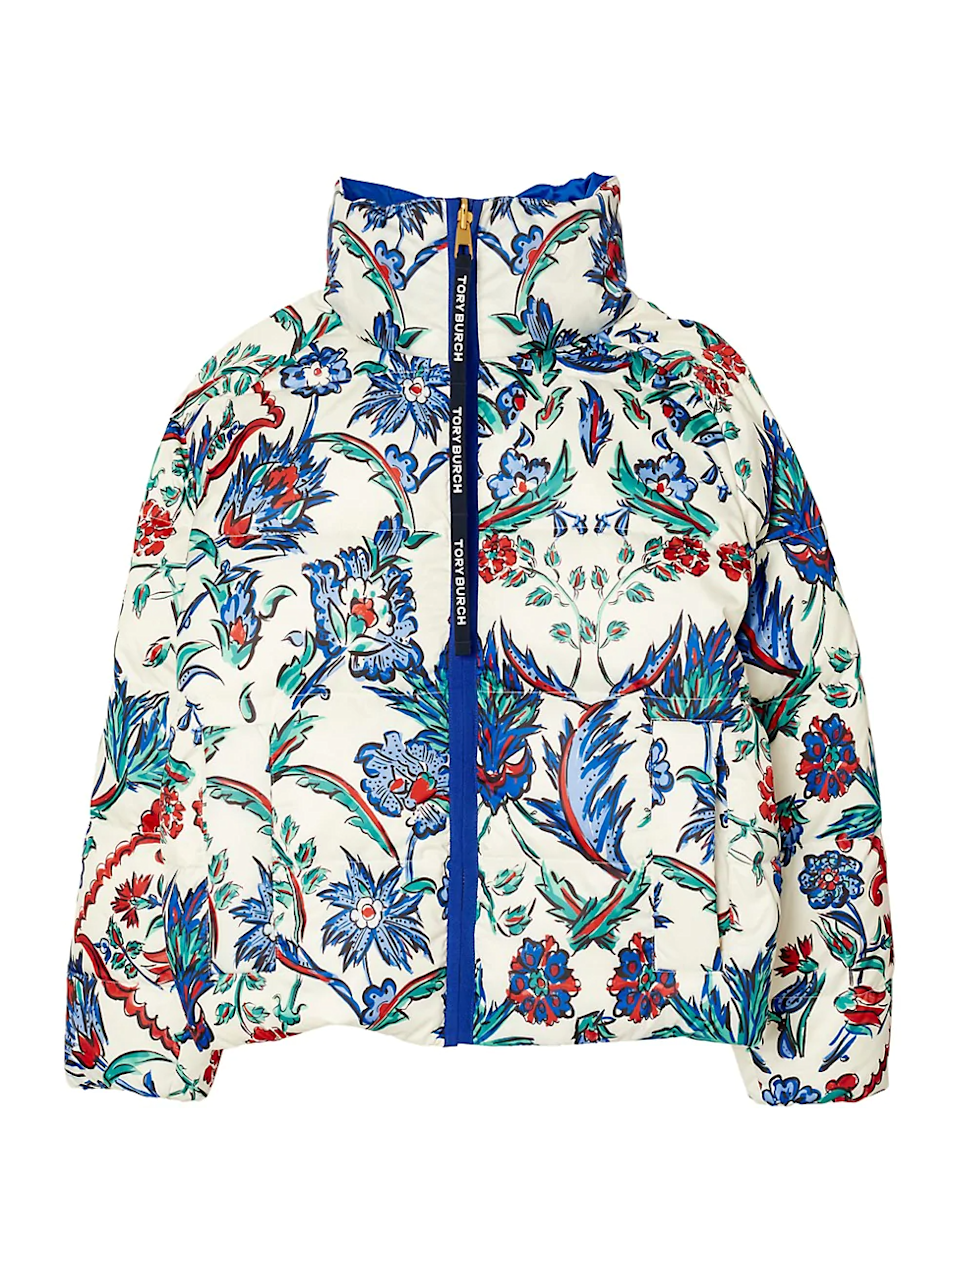 """<br><br><strong>Tory Burch</strong> Down Reversible Printed Puffer Jacket, $, available at <a href=""""https://go.skimresources.com/?id=30283X879131&url=https%3A%2F%2Fwww.saksfifthavenue.com%2Fproduct%2Ftory-burch-down-reversible-printed-puffer-jacket-0400012914779.html"""" rel=""""nofollow noopener"""" target=""""_blank"""" data-ylk=""""slk:Saks Fifth Avenue"""" class=""""link rapid-noclick-resp"""">Saks Fifth Avenue</a>"""